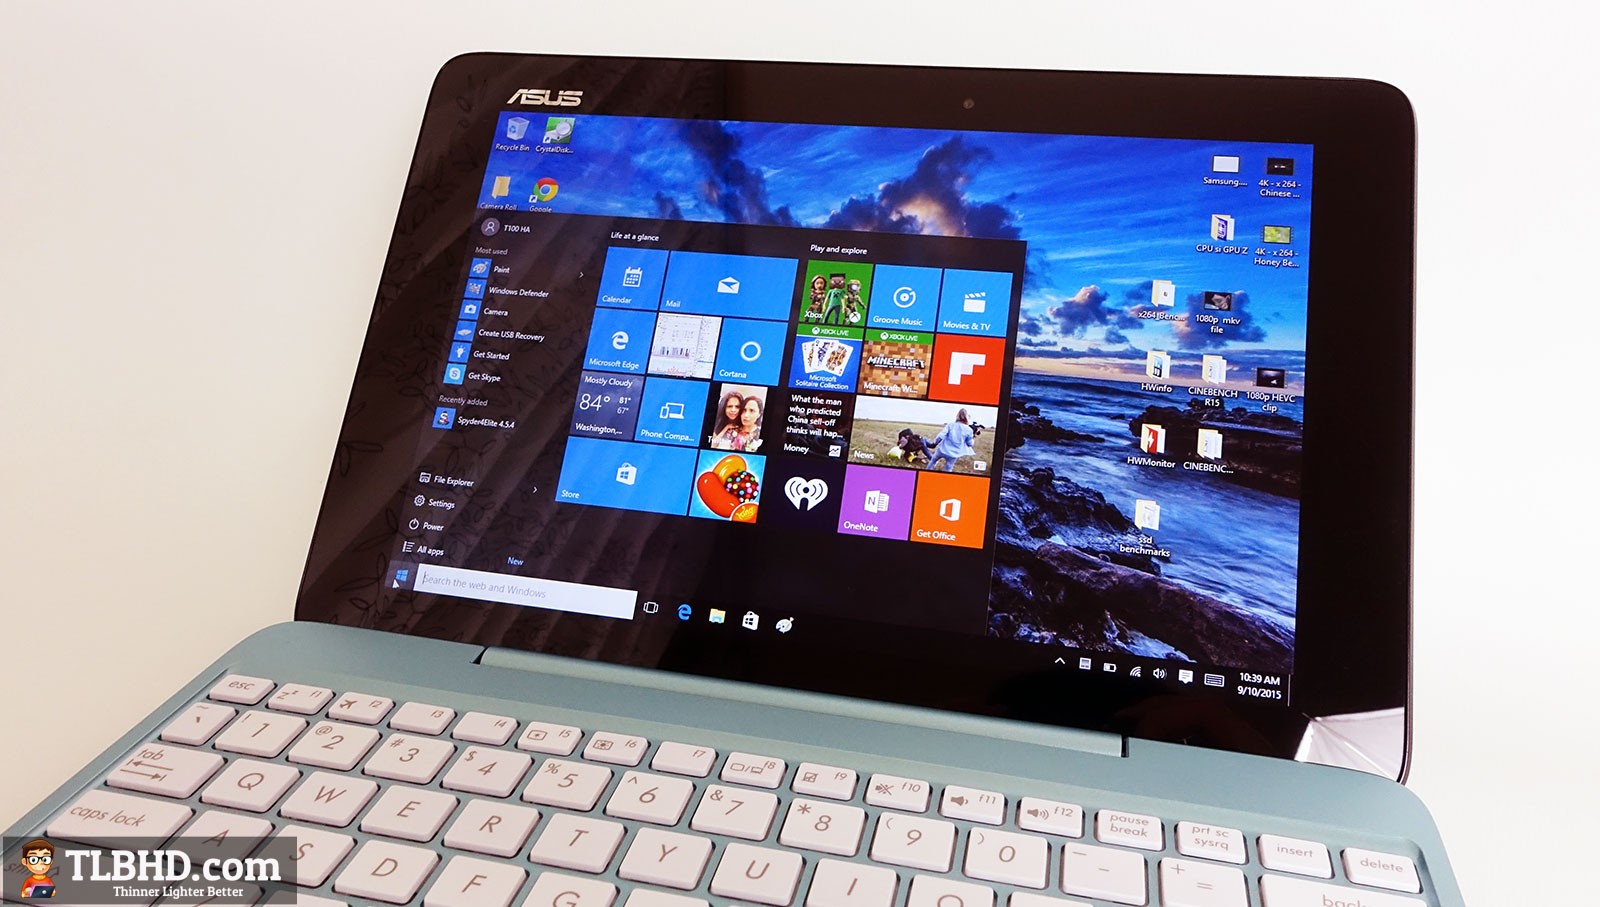 Asus Transformer Book T100ha Review The Cherrytrail Update